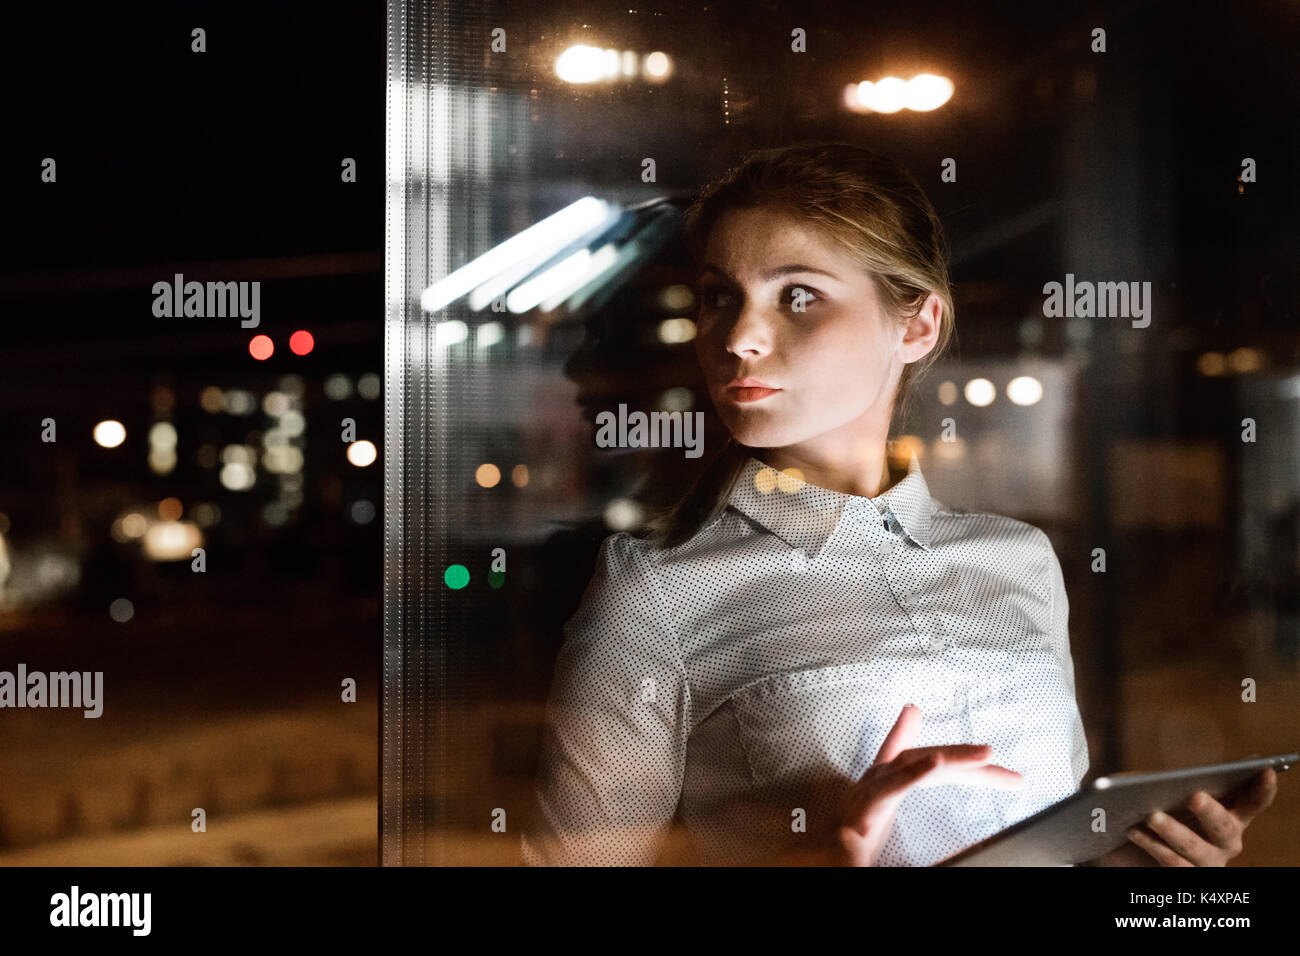 Businesswoman with tablet working late at night. - Stock Image